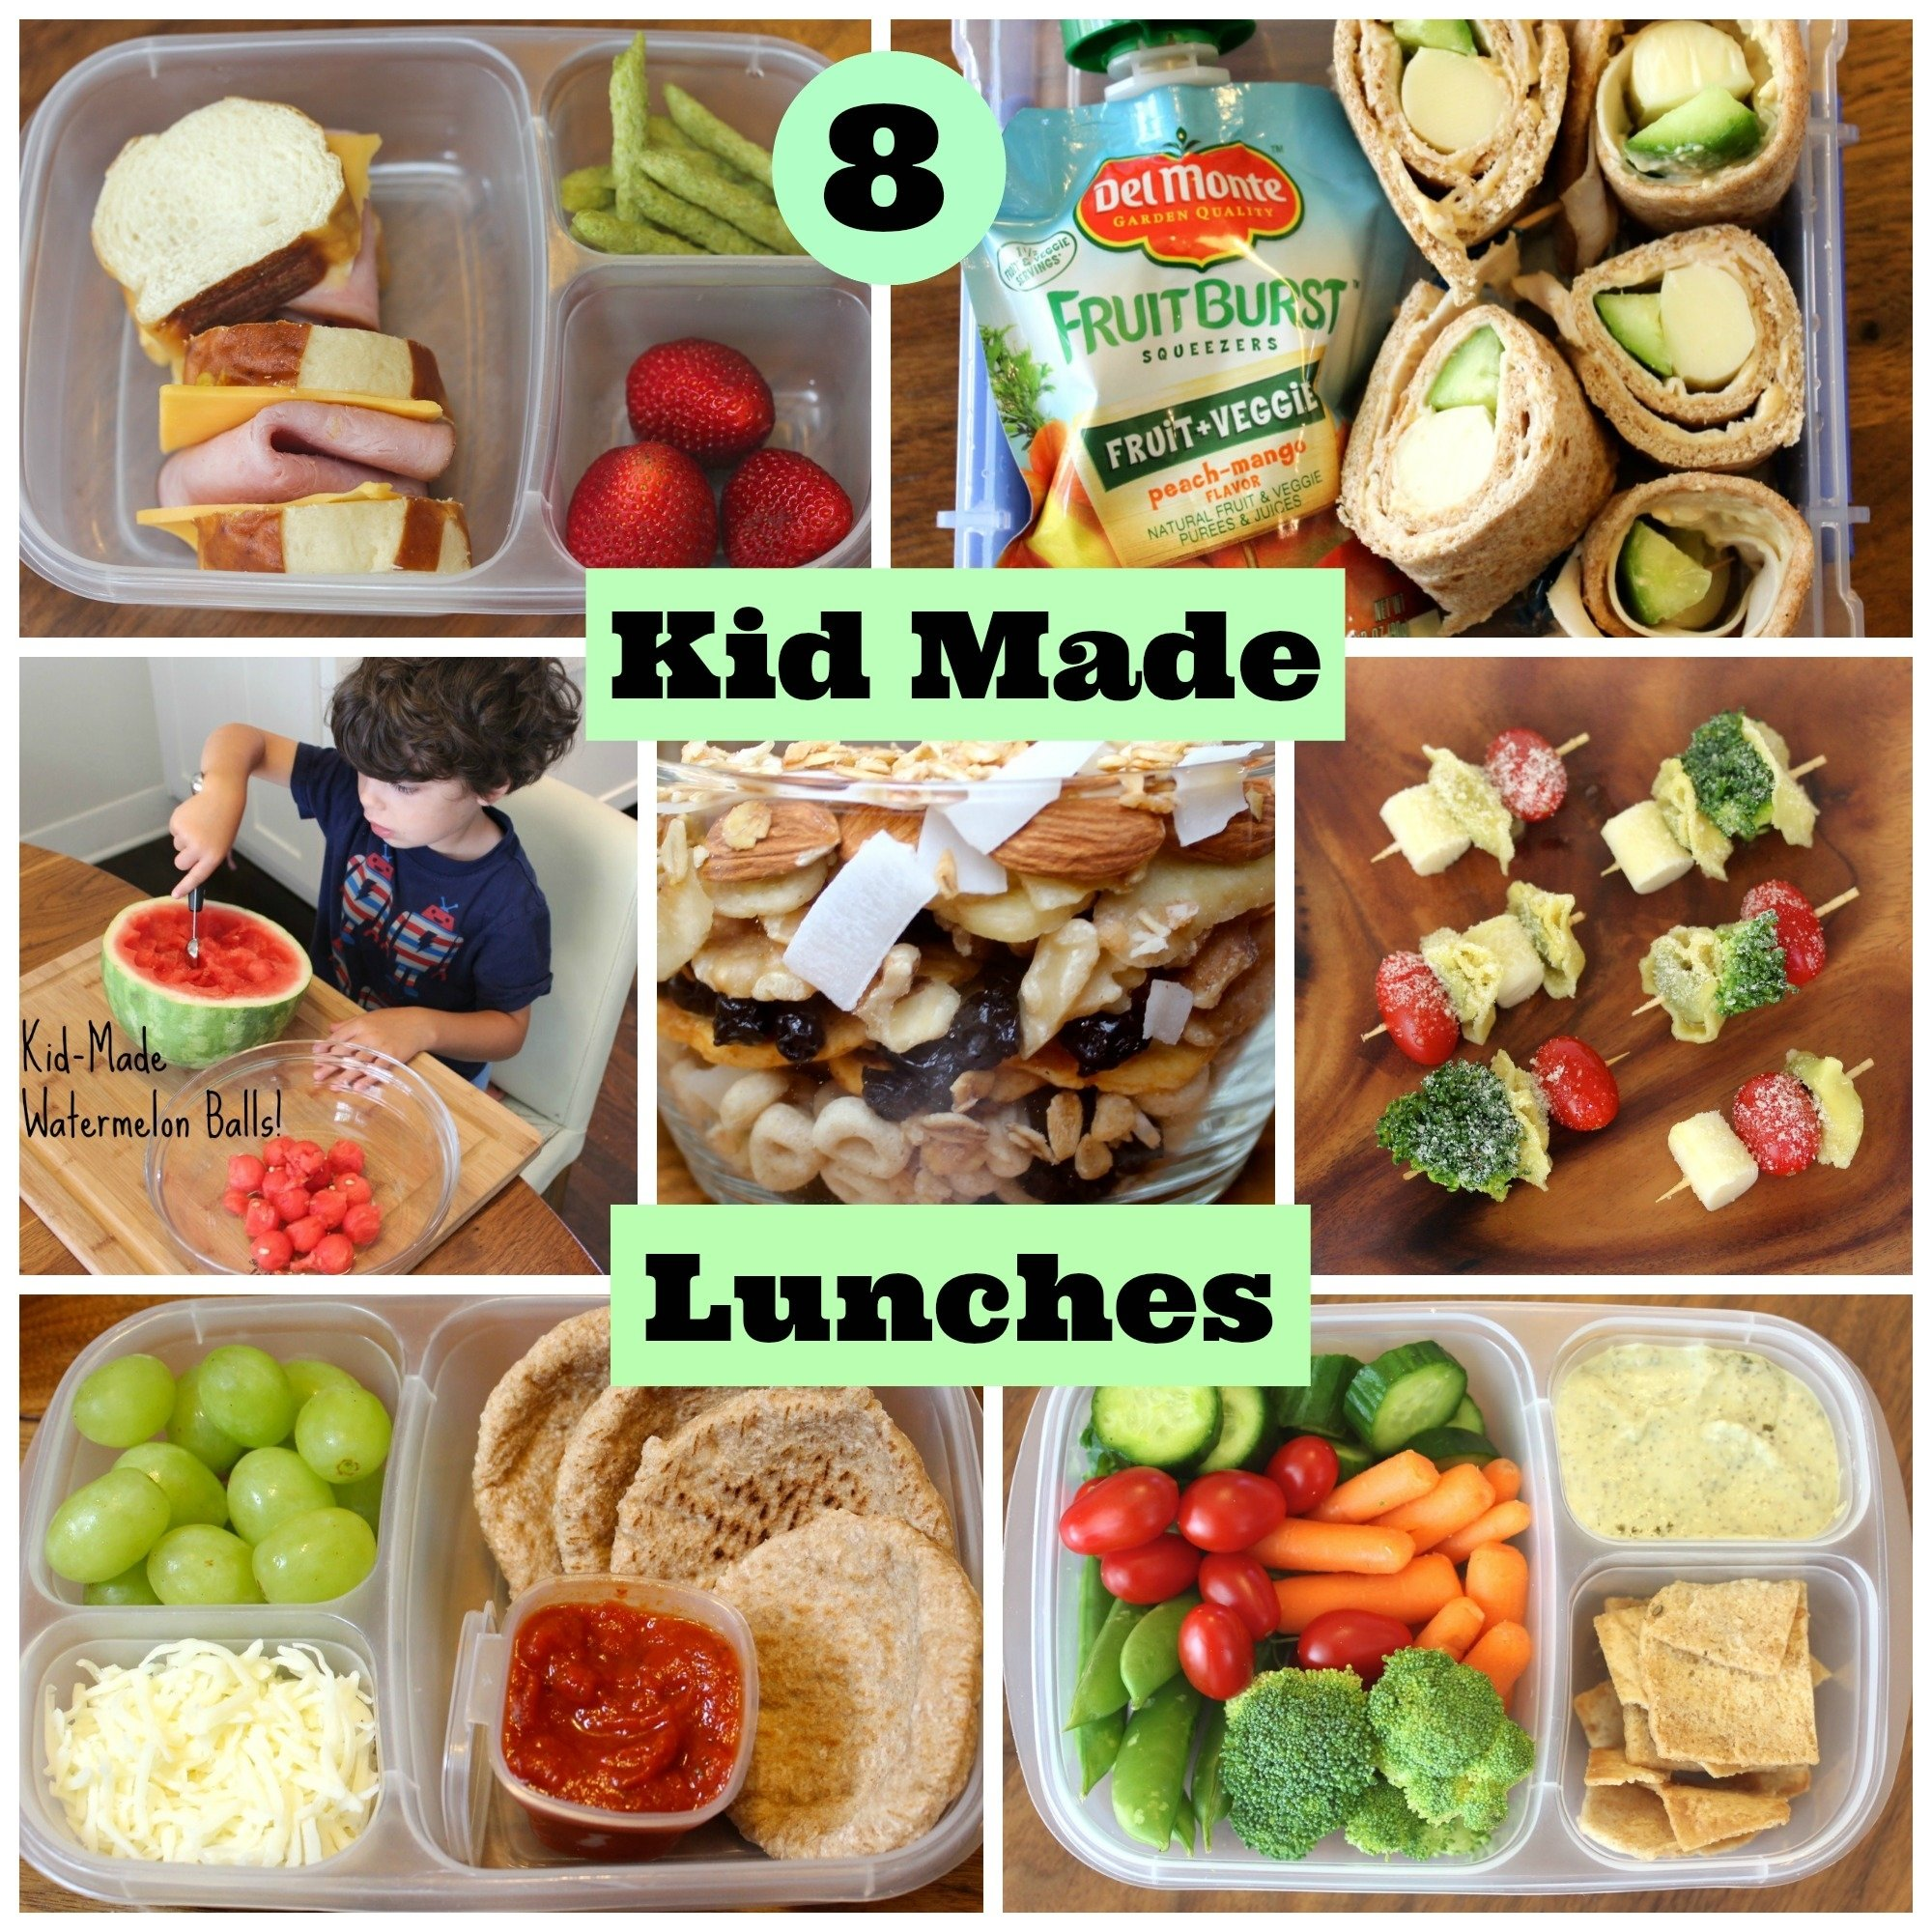 10 Most Popular Lunch Ideas For Kids For School 4 healthy school lunches your kids can make themselves babble 13 2021